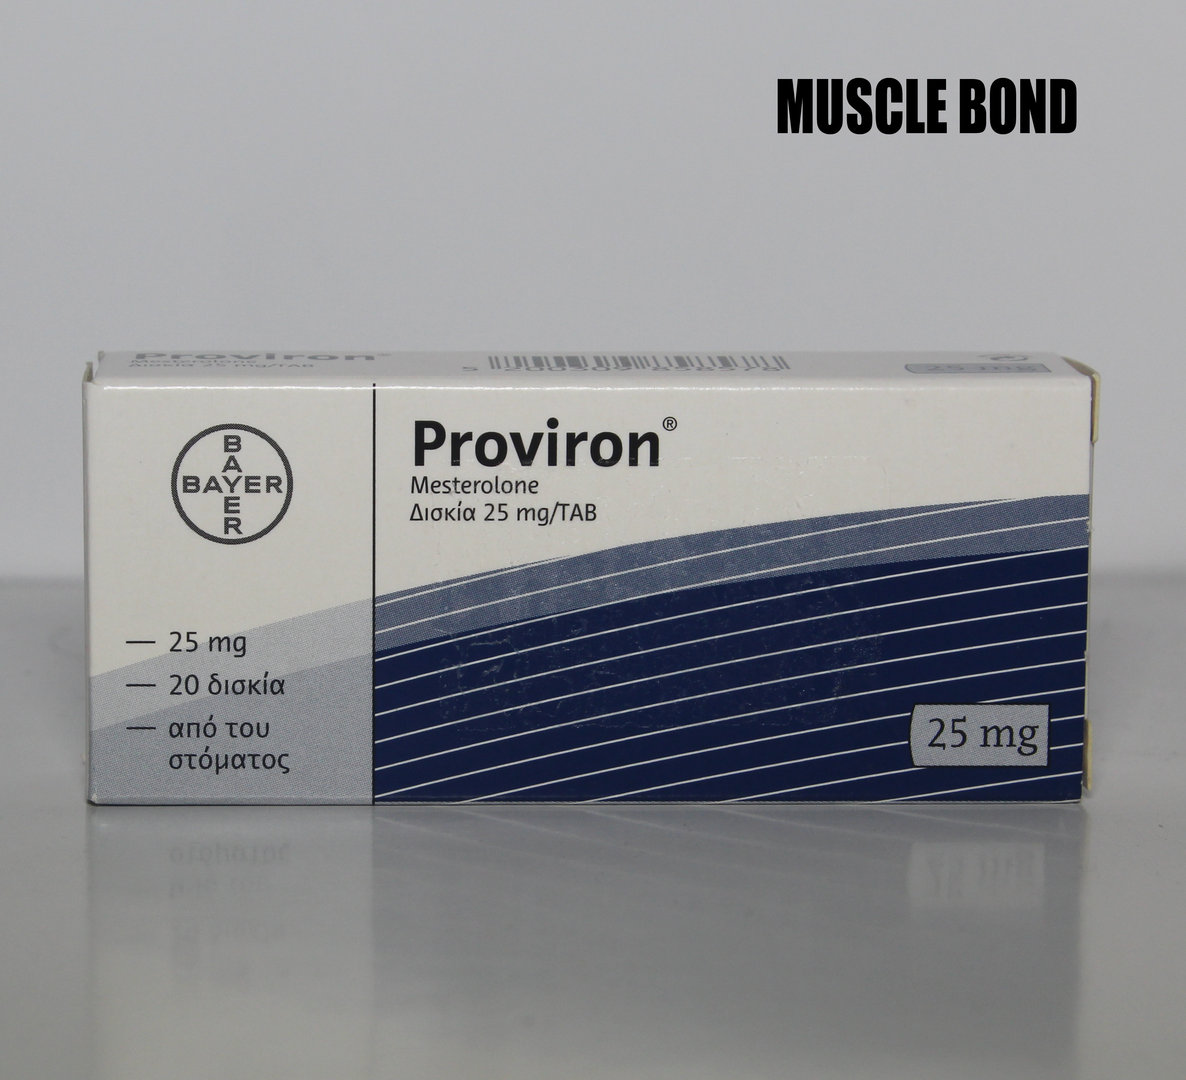 boldenone and related steroids